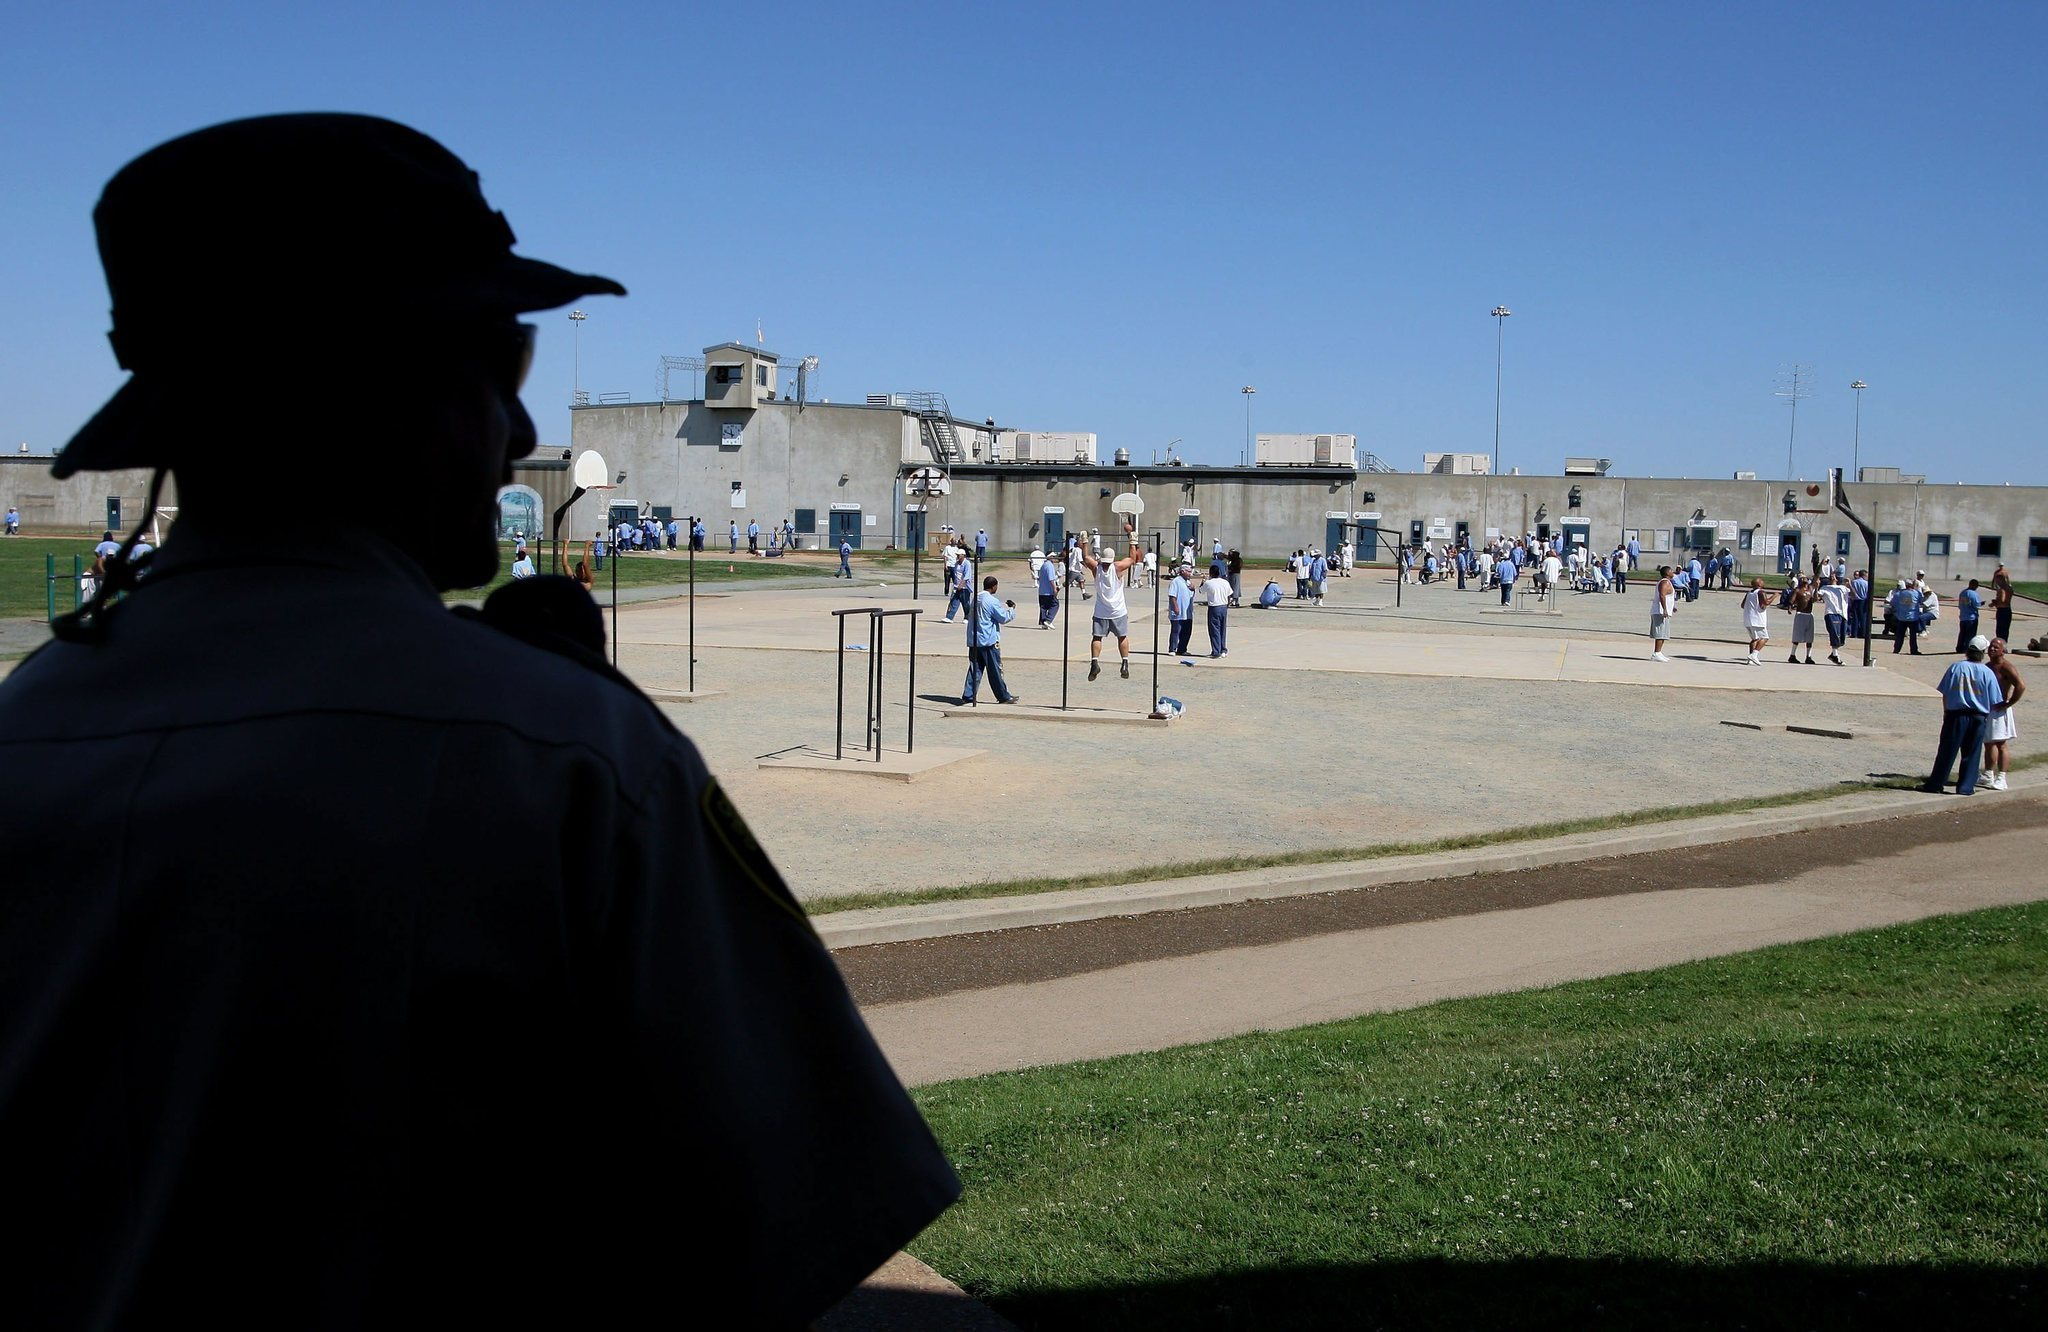 prison education Education and subsequent employment act as protective factors associated with a reduced likelihood of re-offending providing women in prison with education so they.